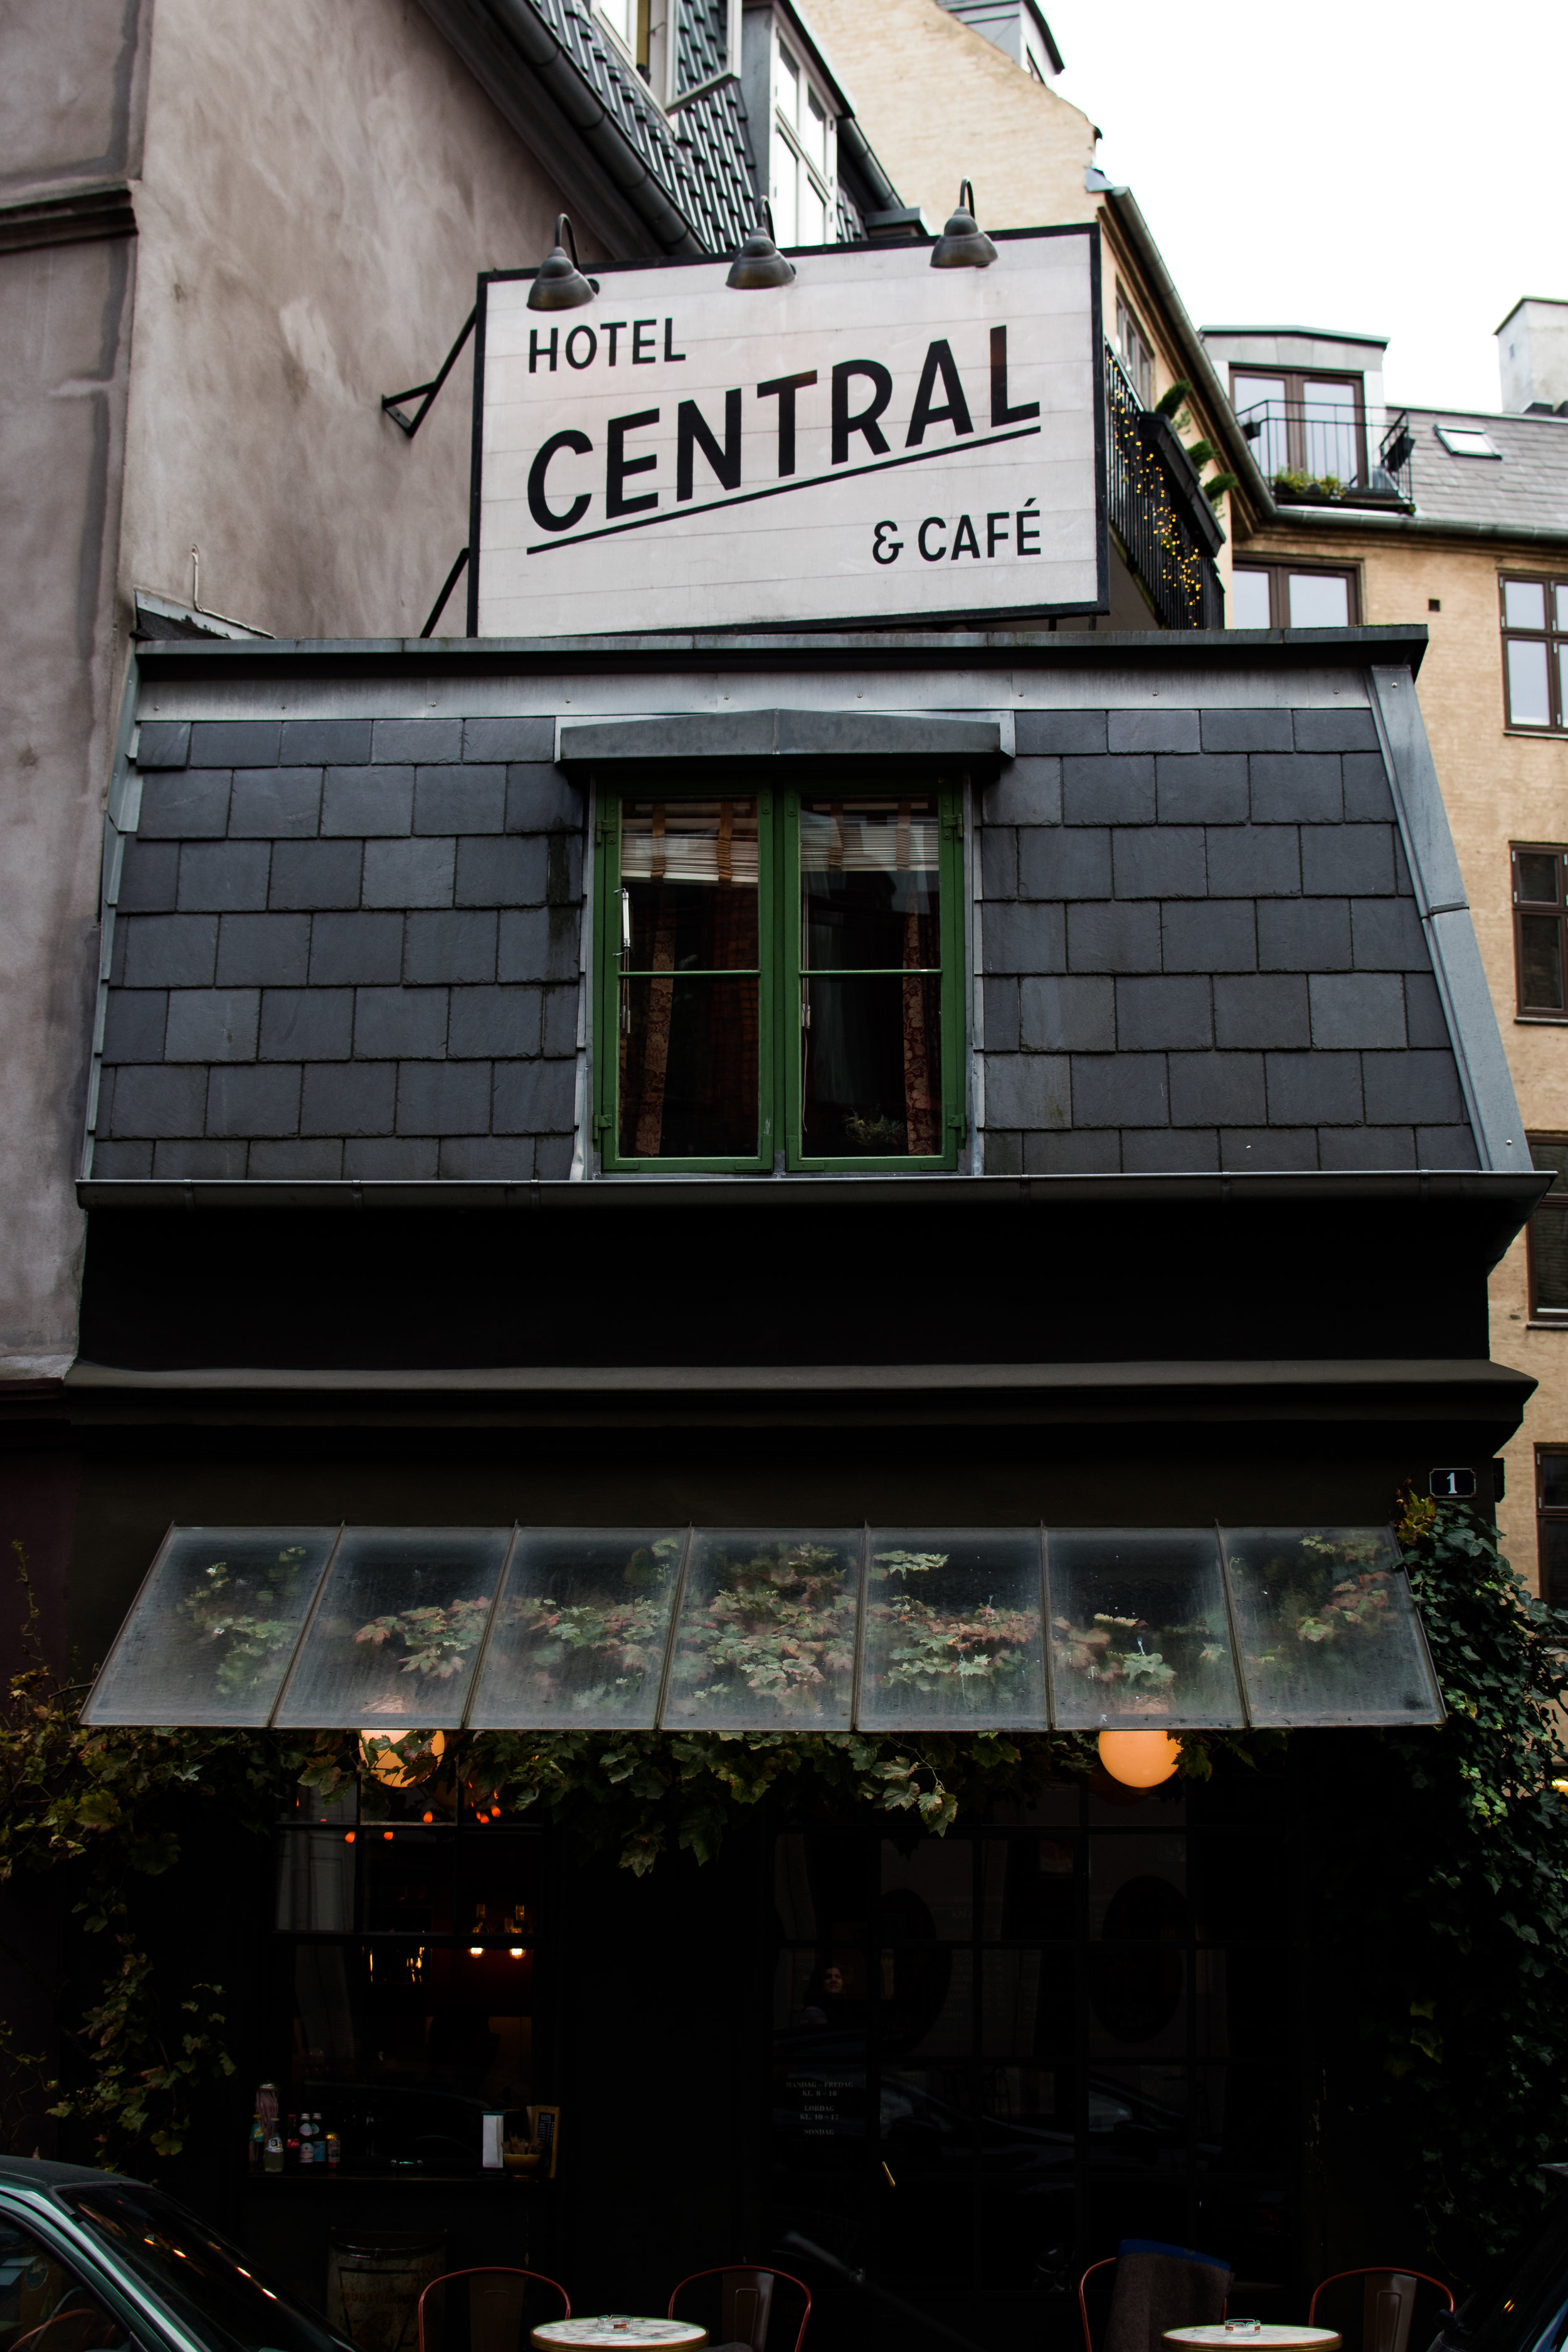 CENTRAL HOTEL AND CAFE